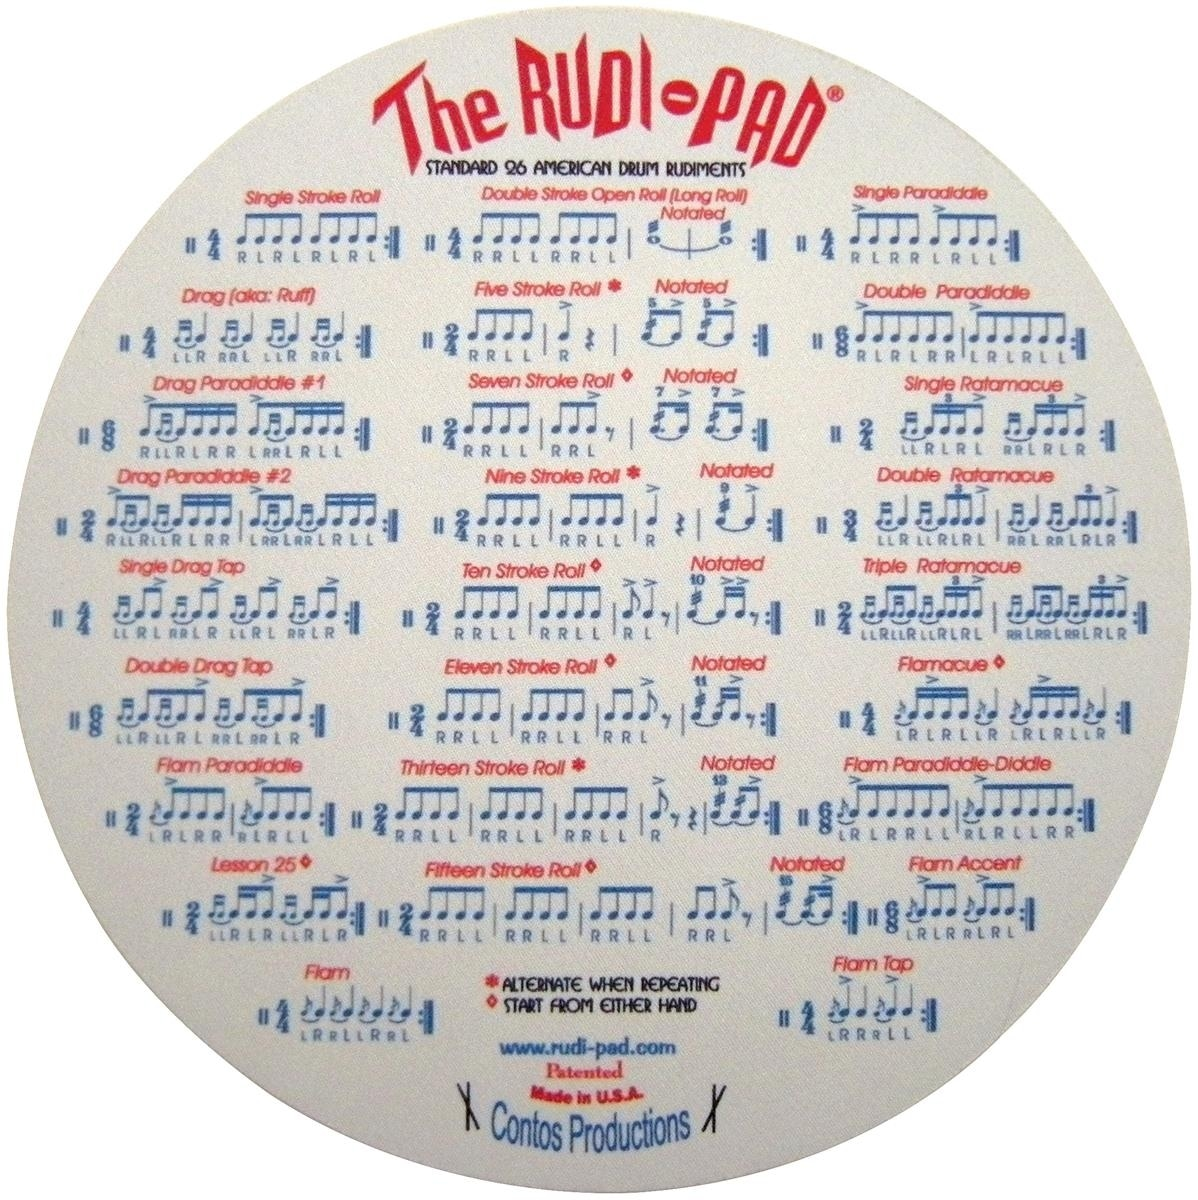 The Rudi-Pad promo codes